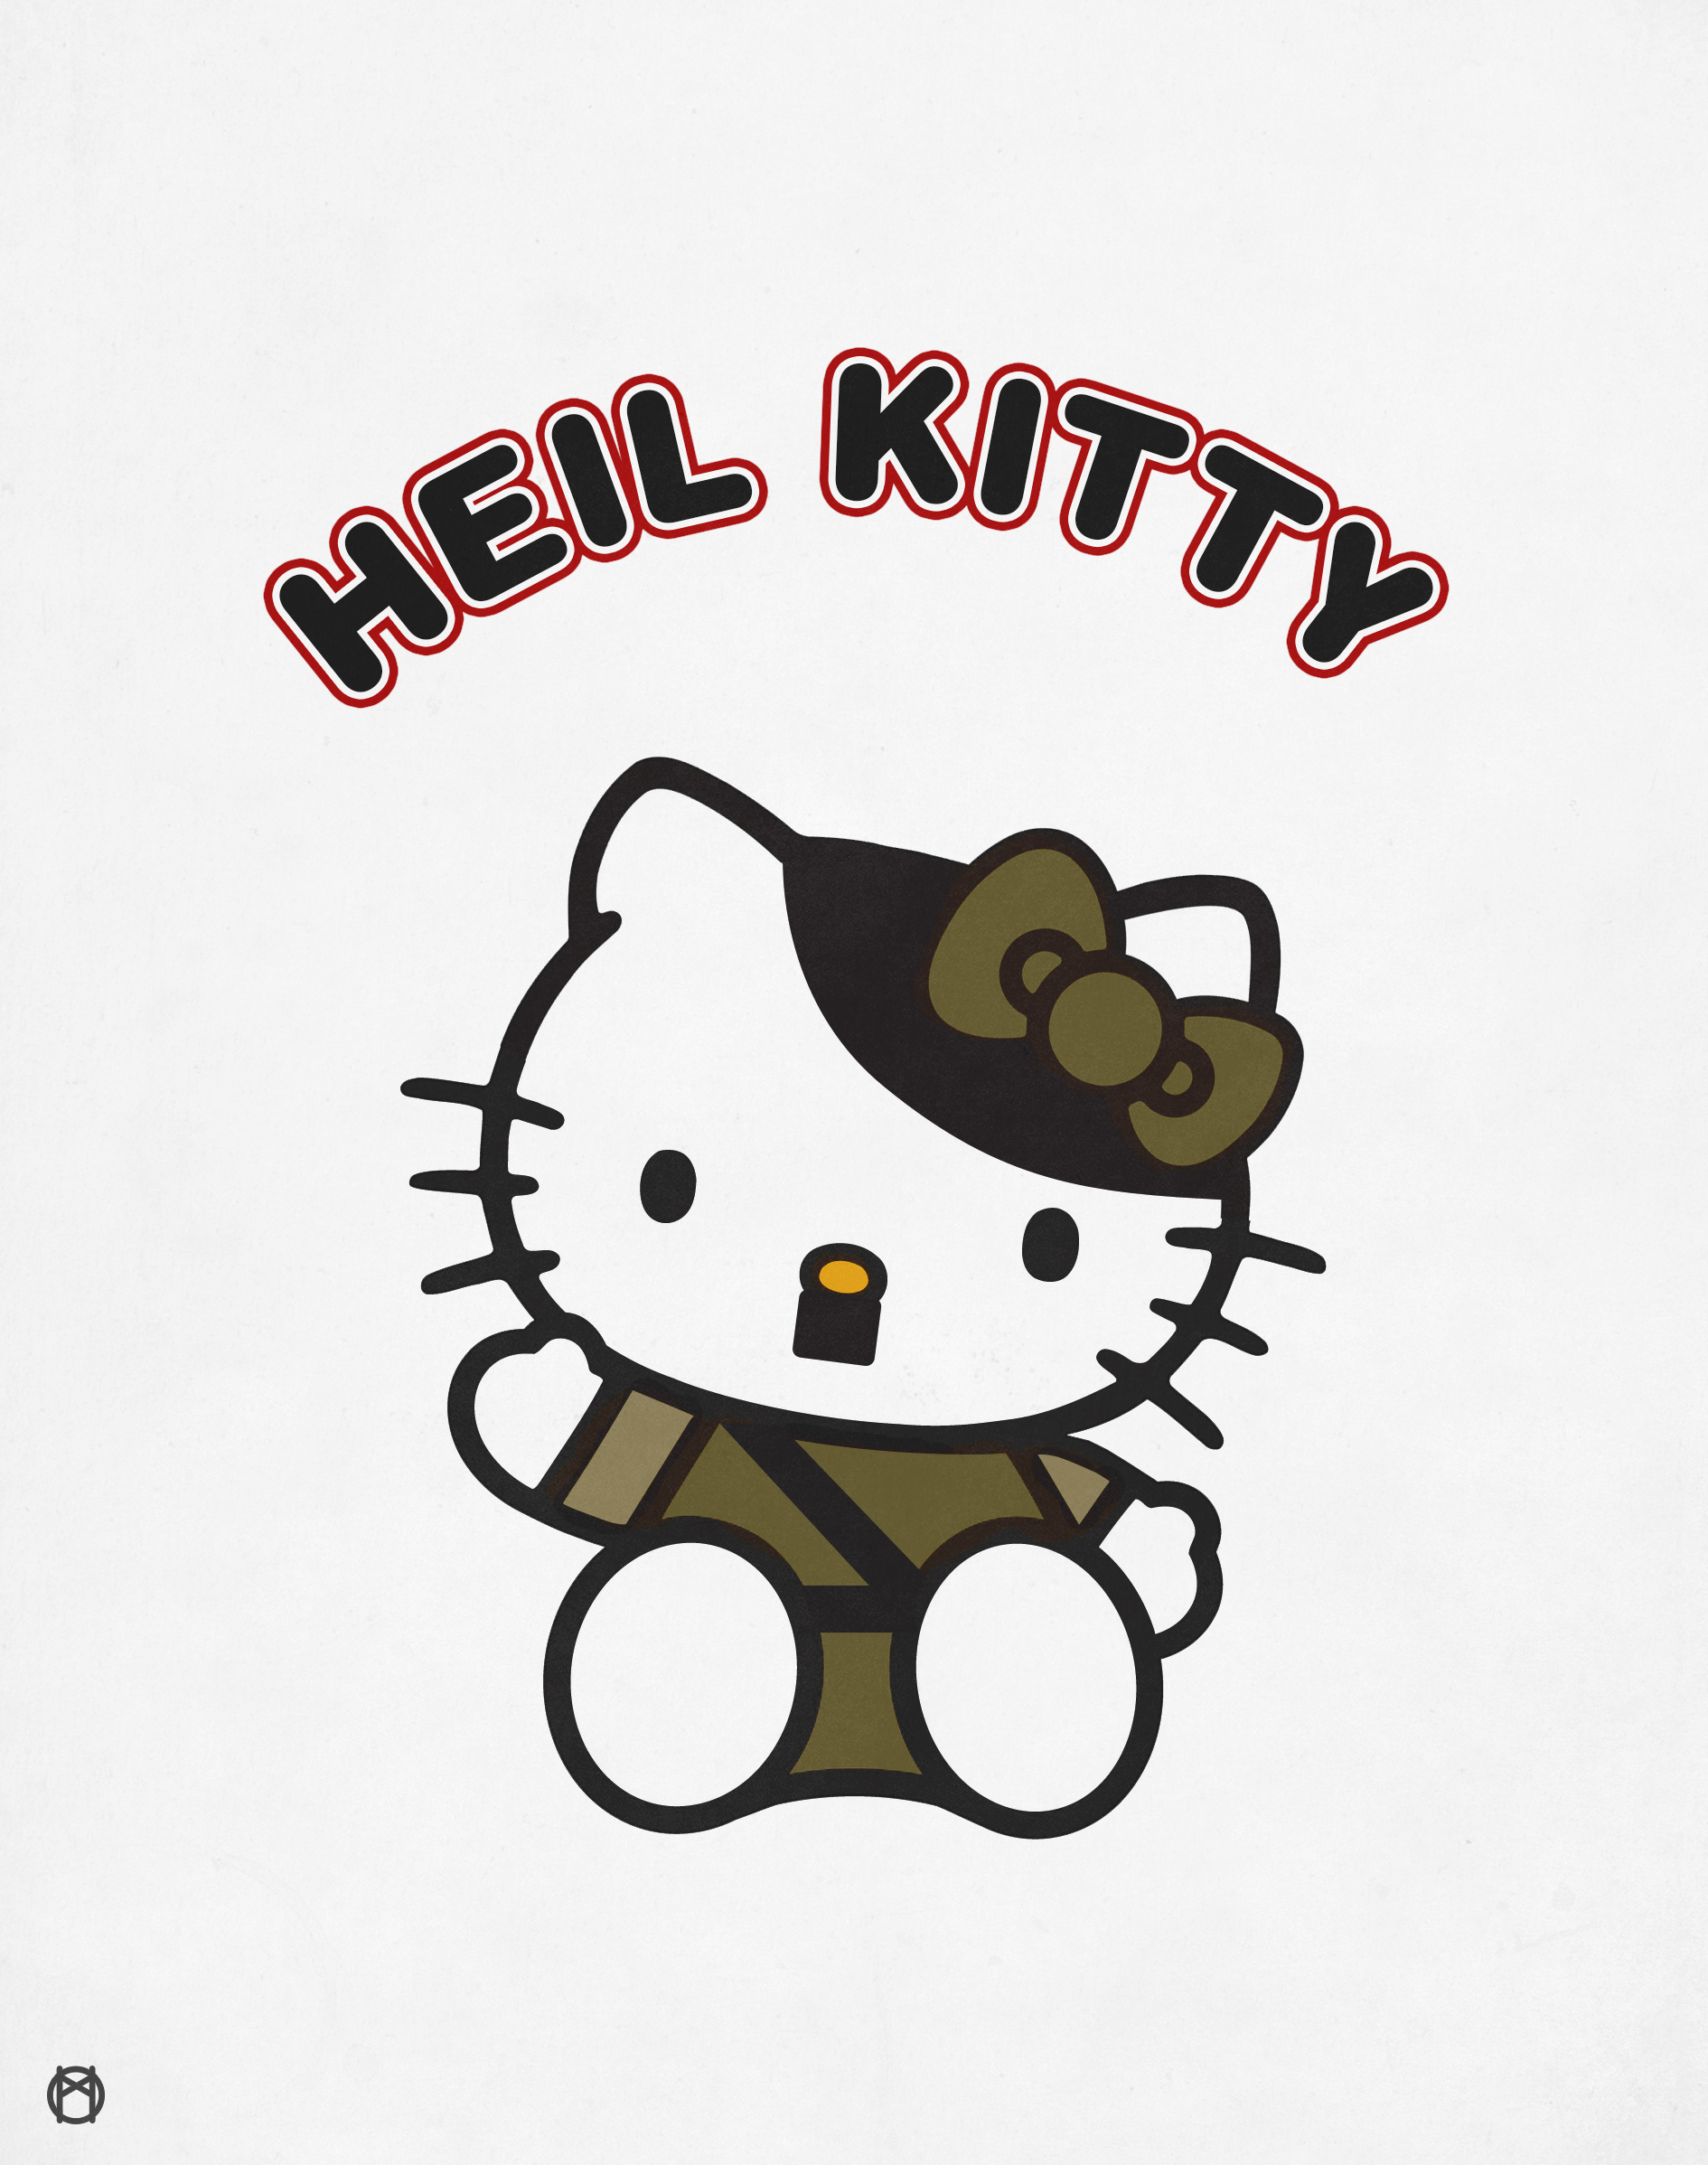 Heil Kitty